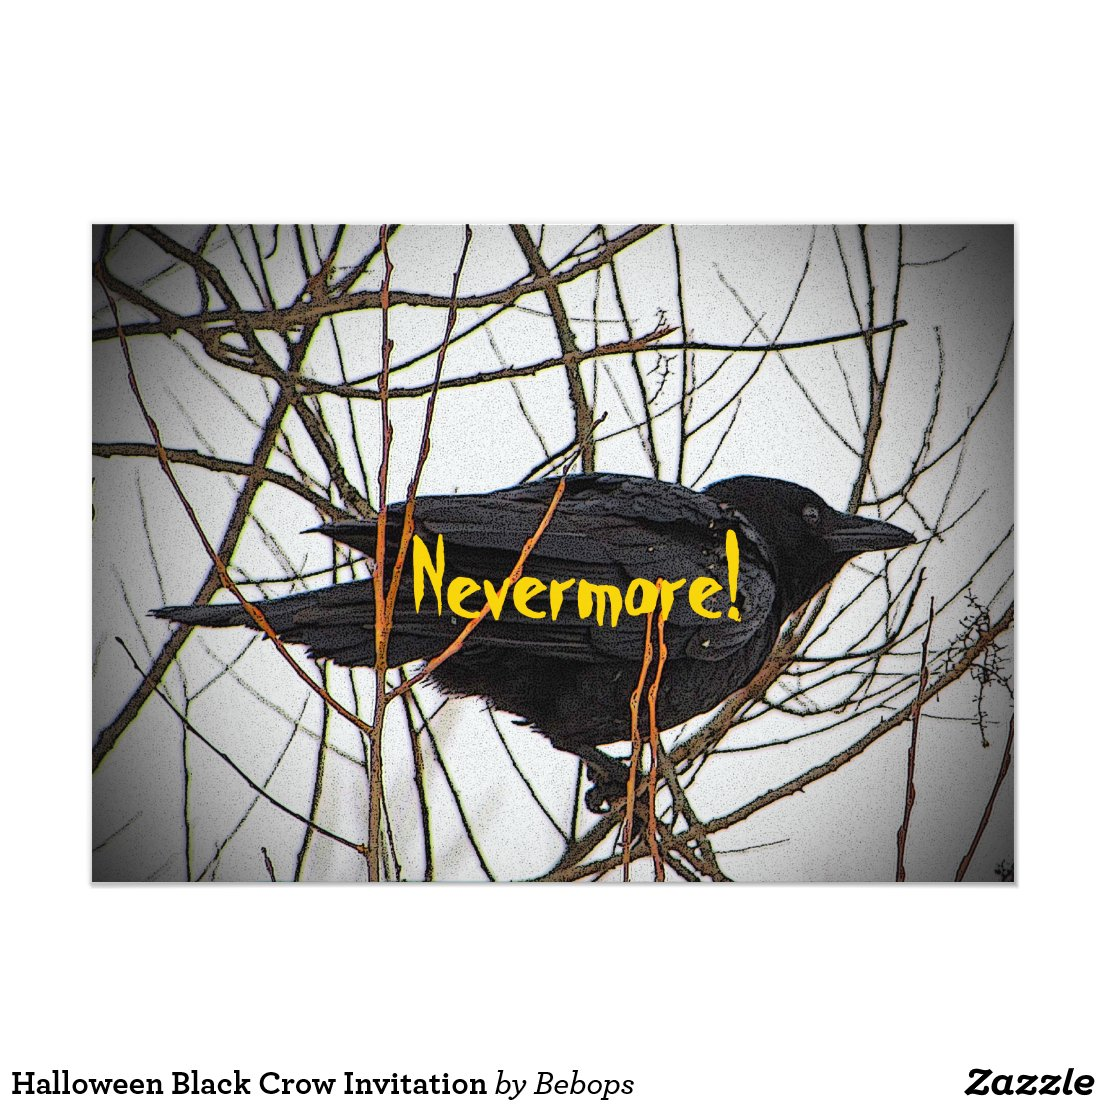 Halloween Black Crow Invitation